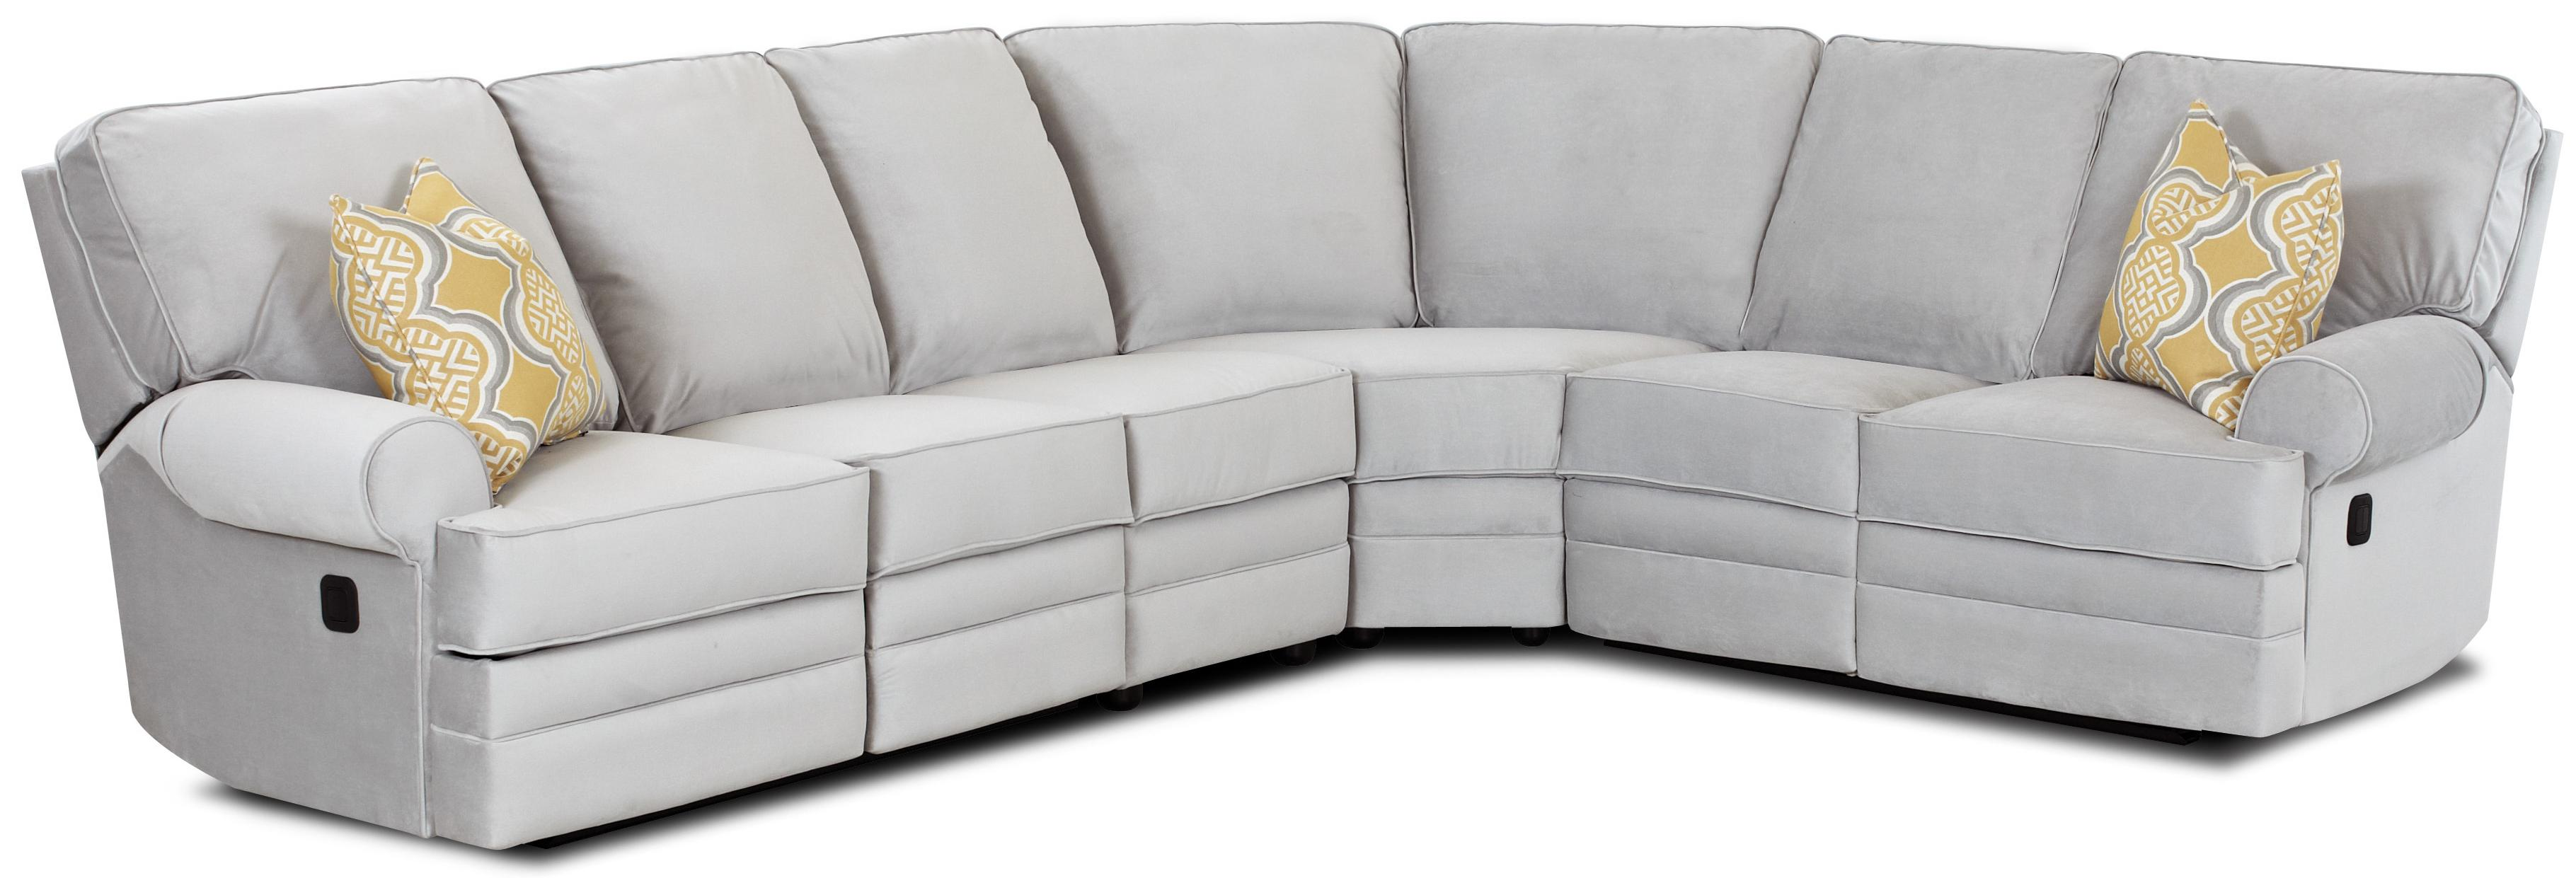 console sectional furniture contemporary design with reclining match leather recliner products couch ashley by sofa